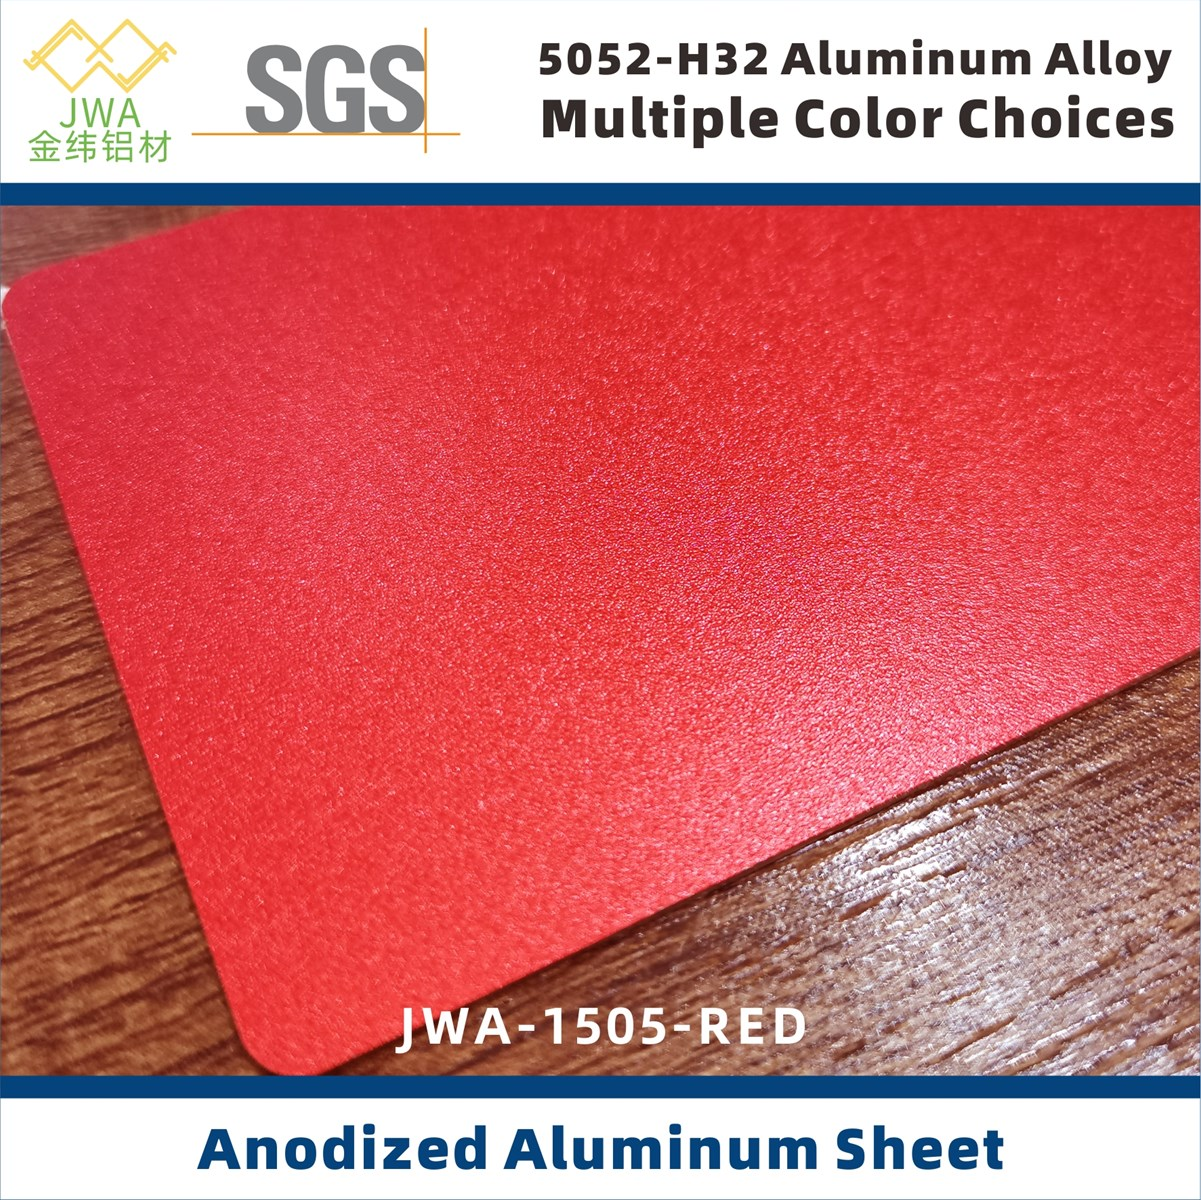 Factory Supplies 5052H32 Anodized Aluminum Coil for Metal Facade Materials Household Appliance Aluminum Shell